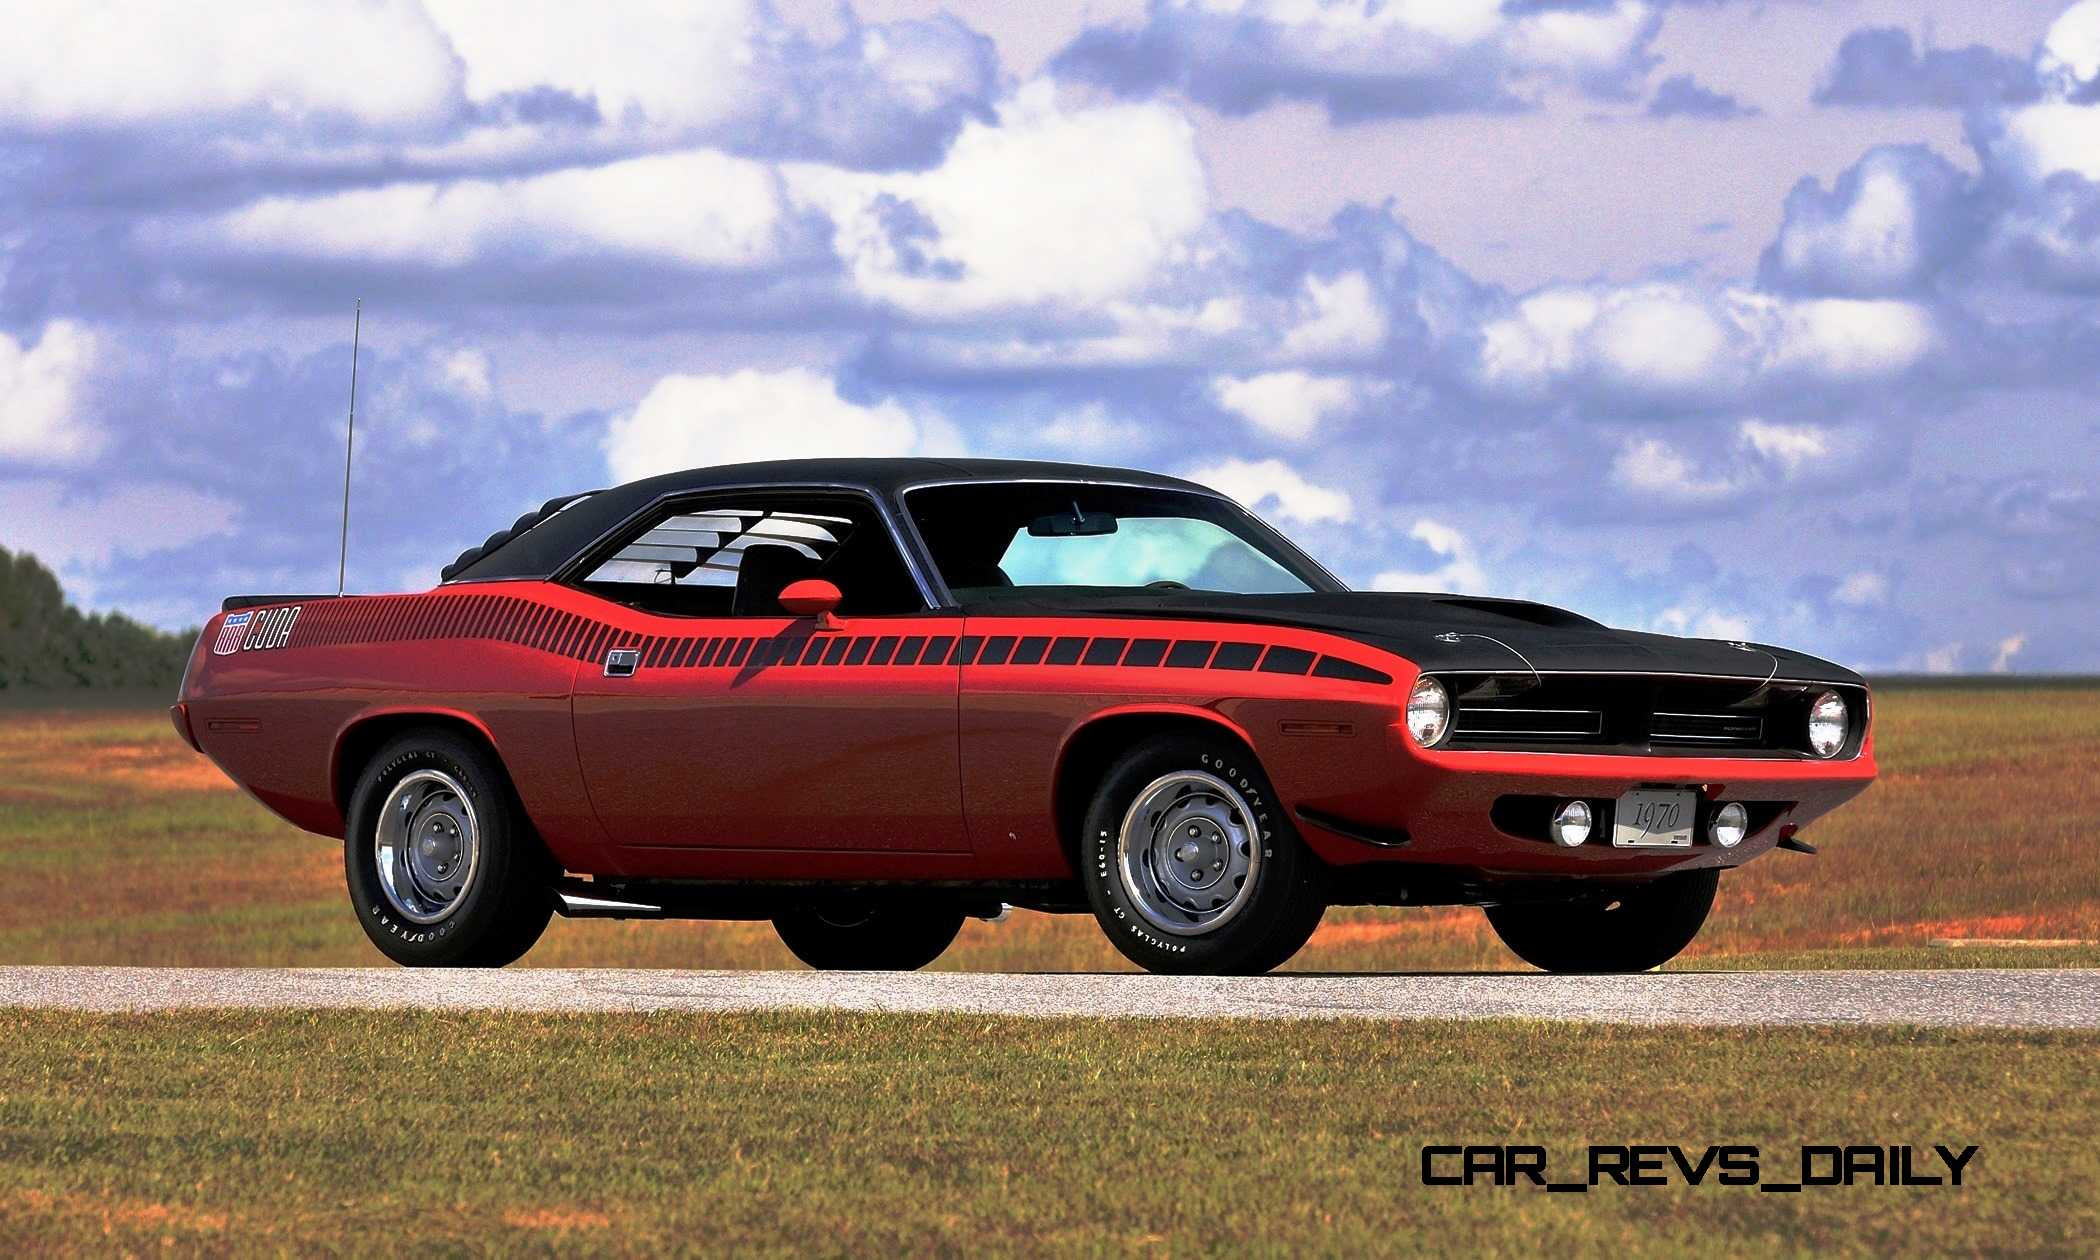 ... 1968 Plymouth Barracuda Coupe. on plymouth barracuda 340 engine